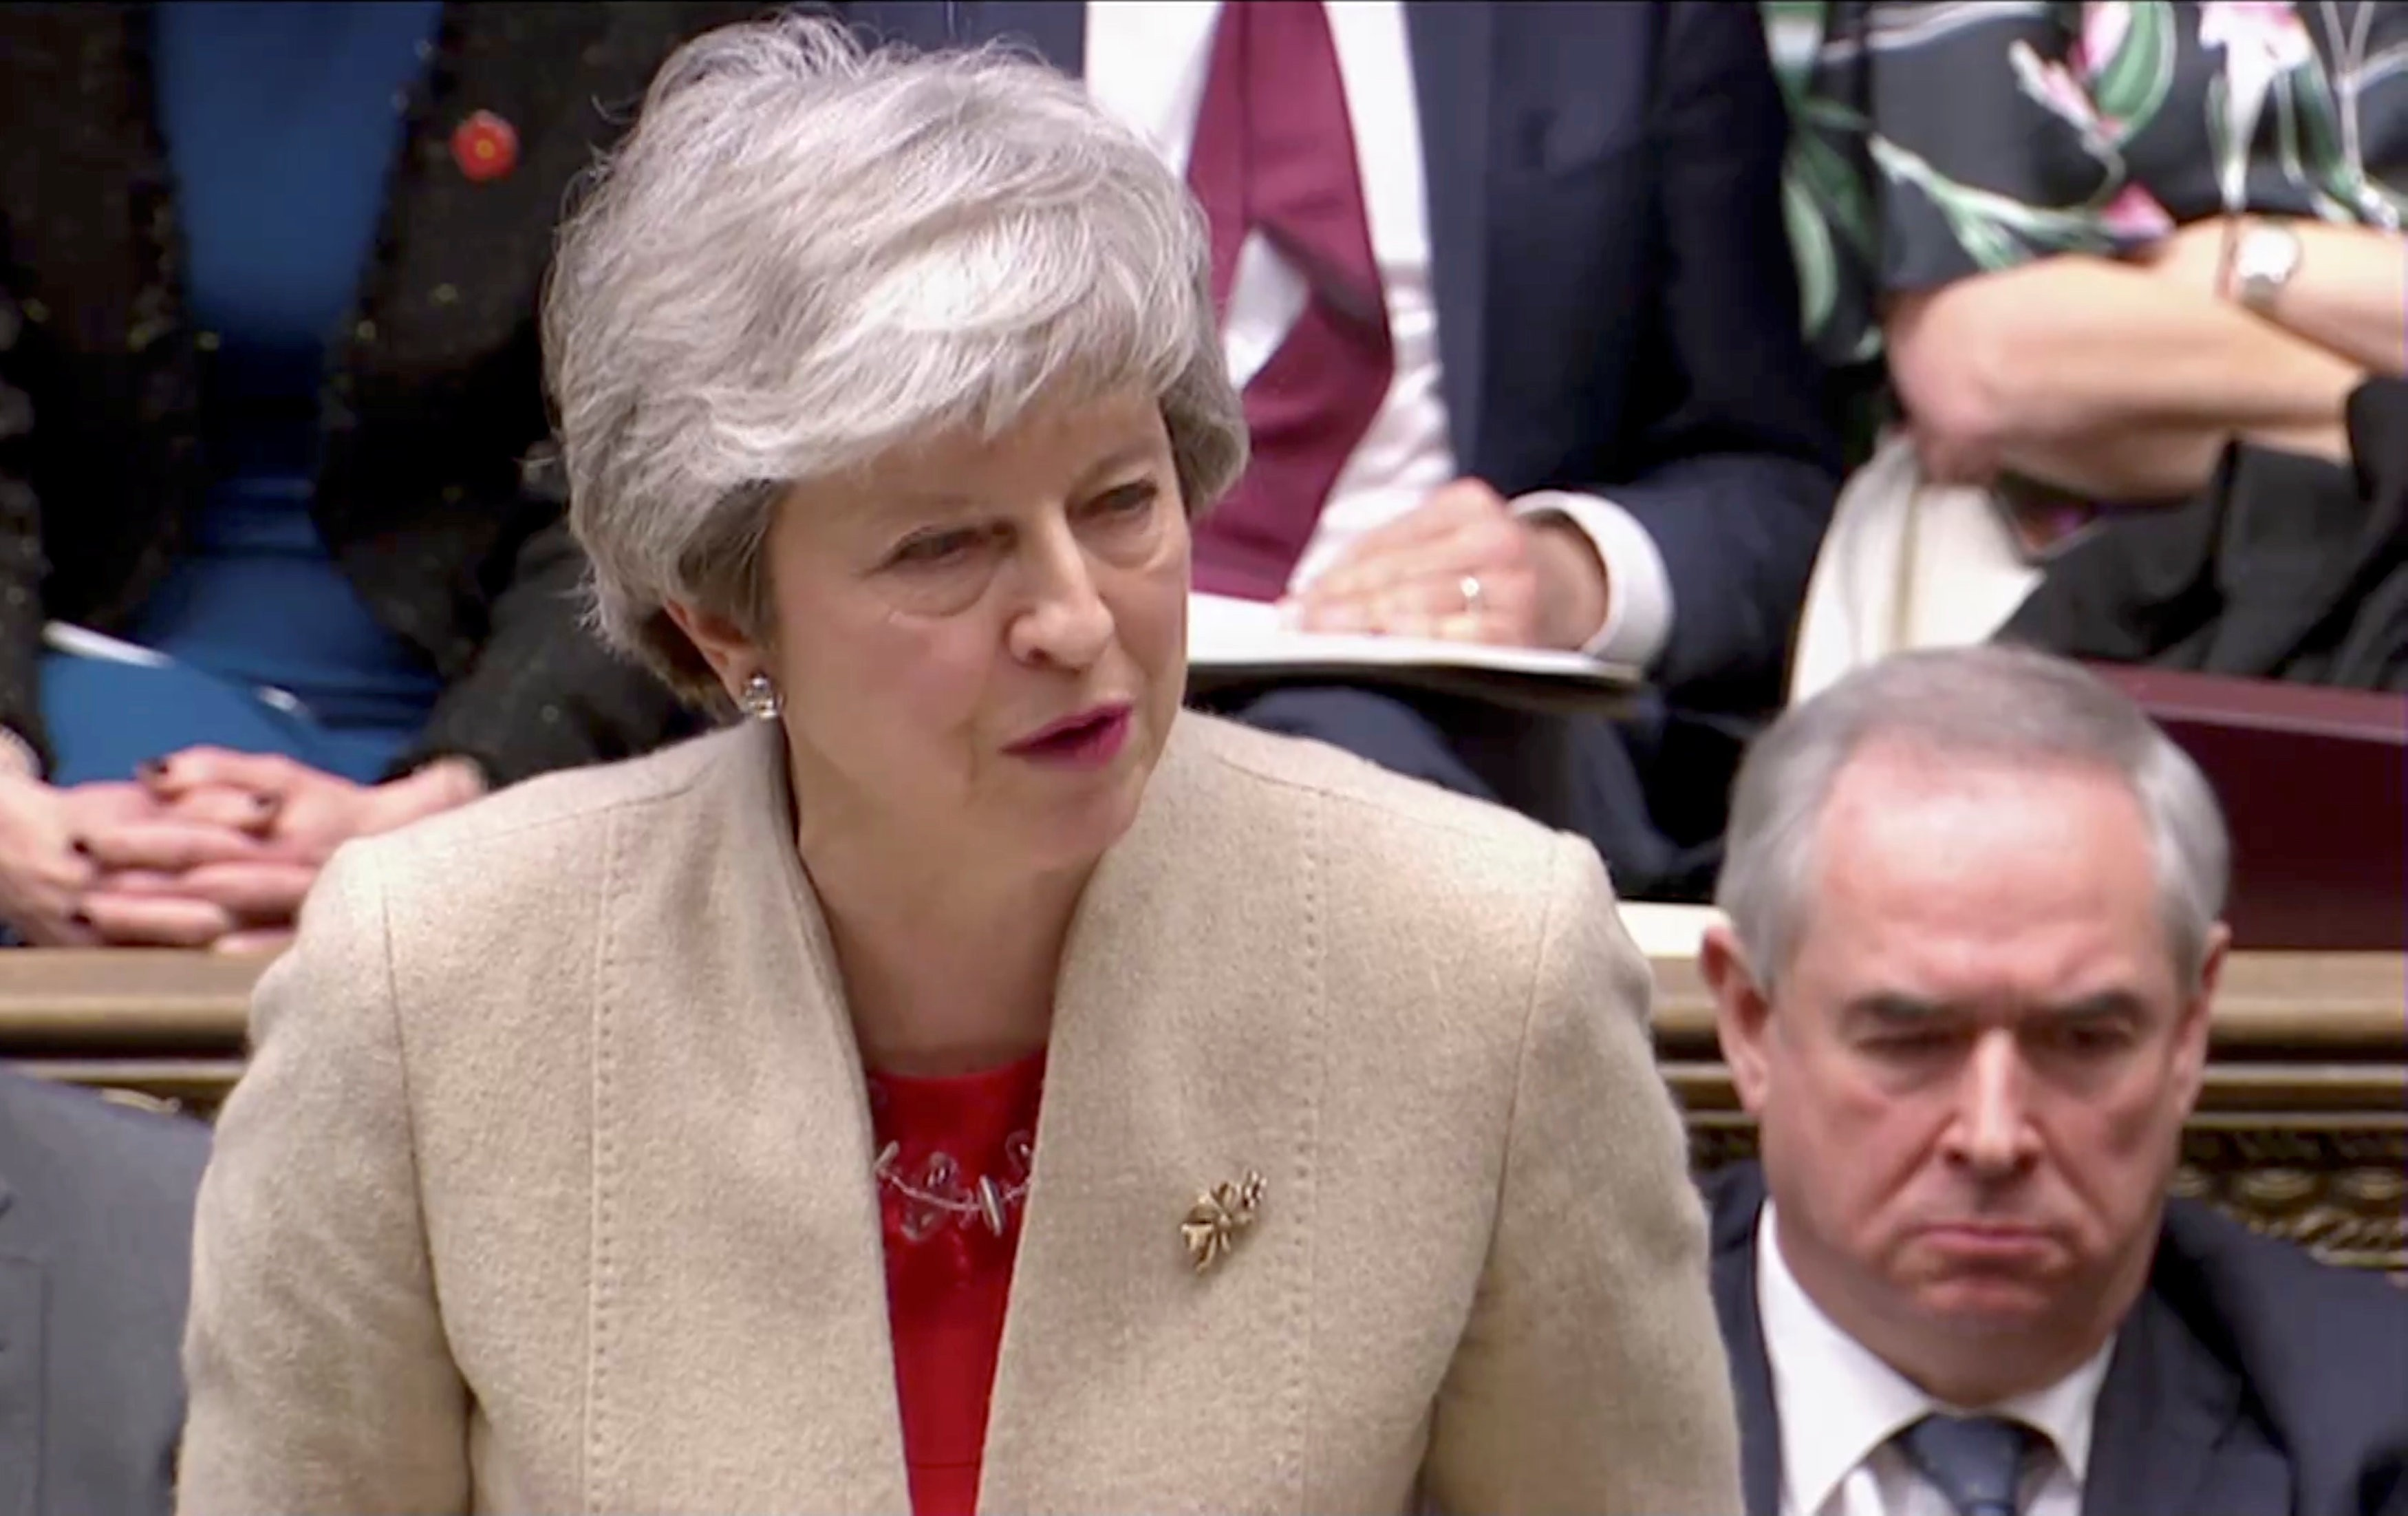 British lawmakers have rejected Prime Minister Theresa May's divorce deal for the third time (Pic credit: Reuters)